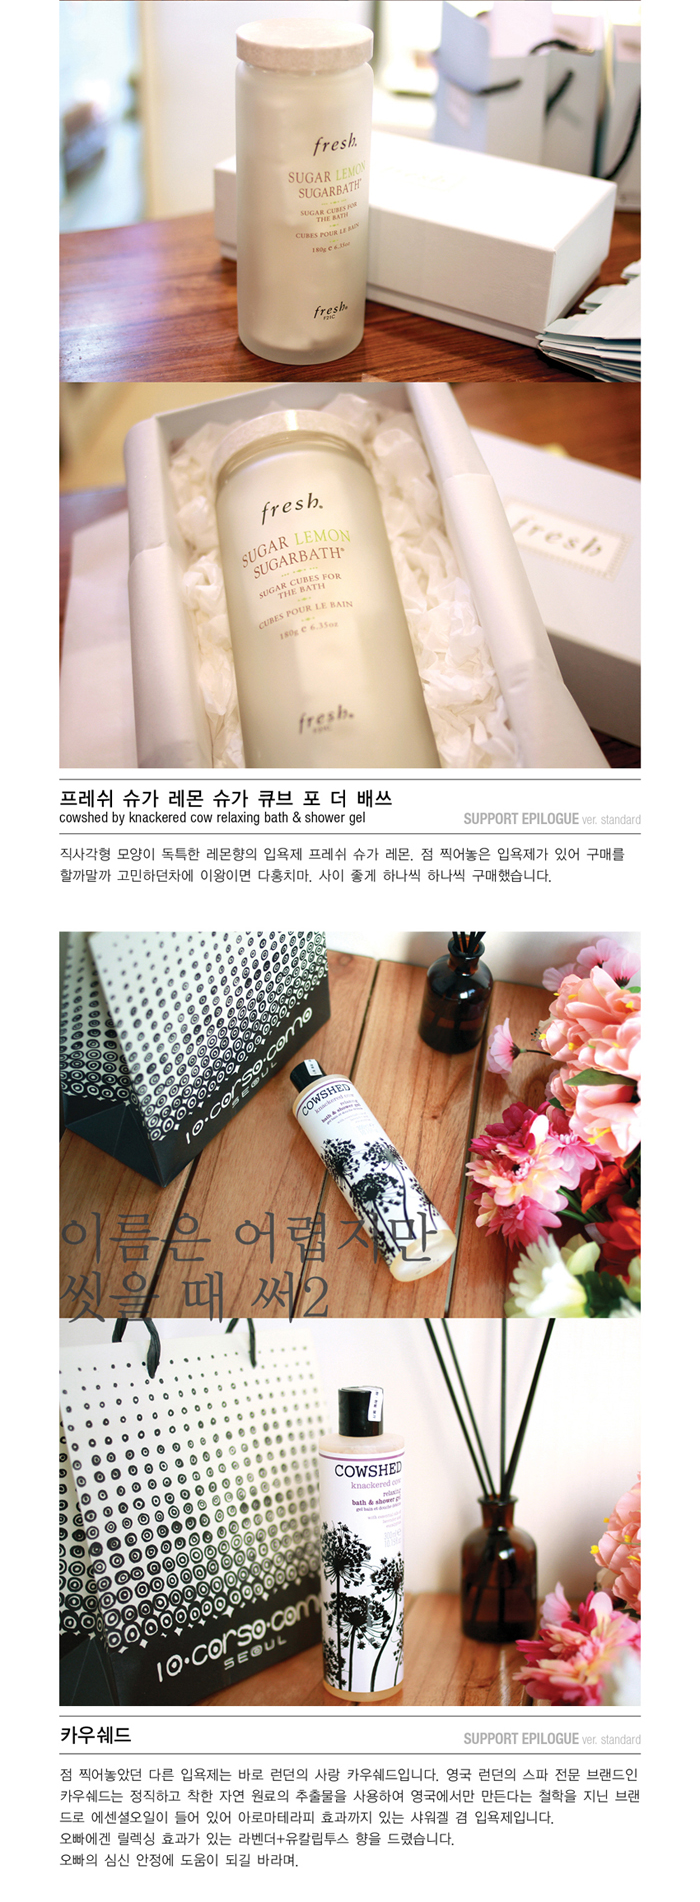 140901-3.png